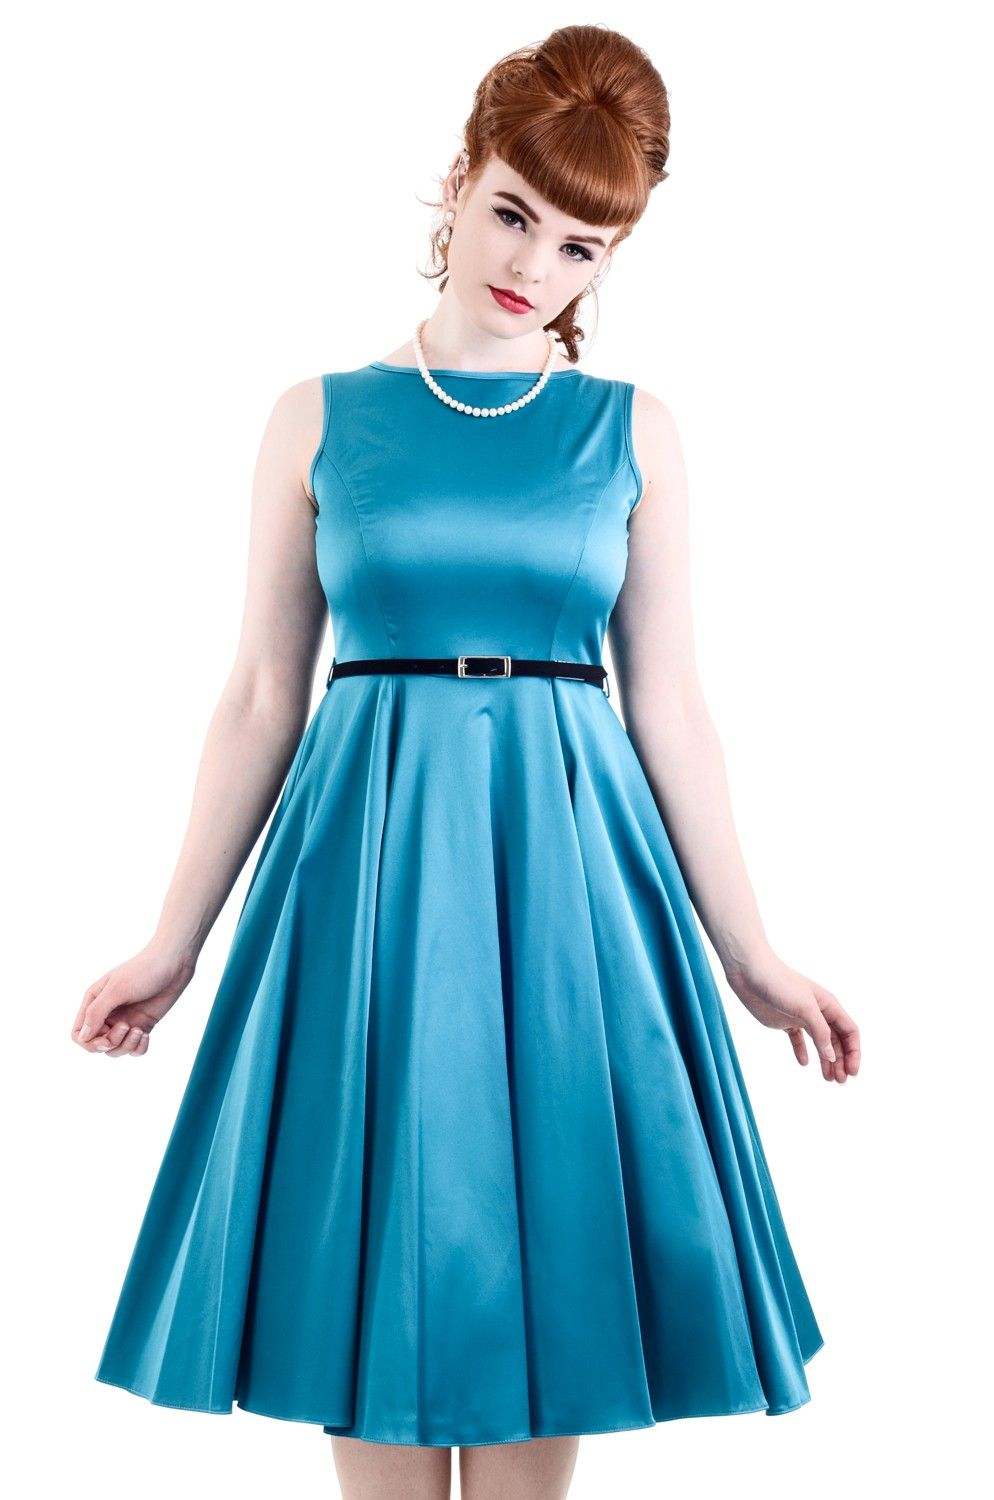 New turquoise hepburn dress 45 made in london fashion ideas for mum the famous lady vintage audrey hepburn dress features a full style flared ombrellifo Image collections